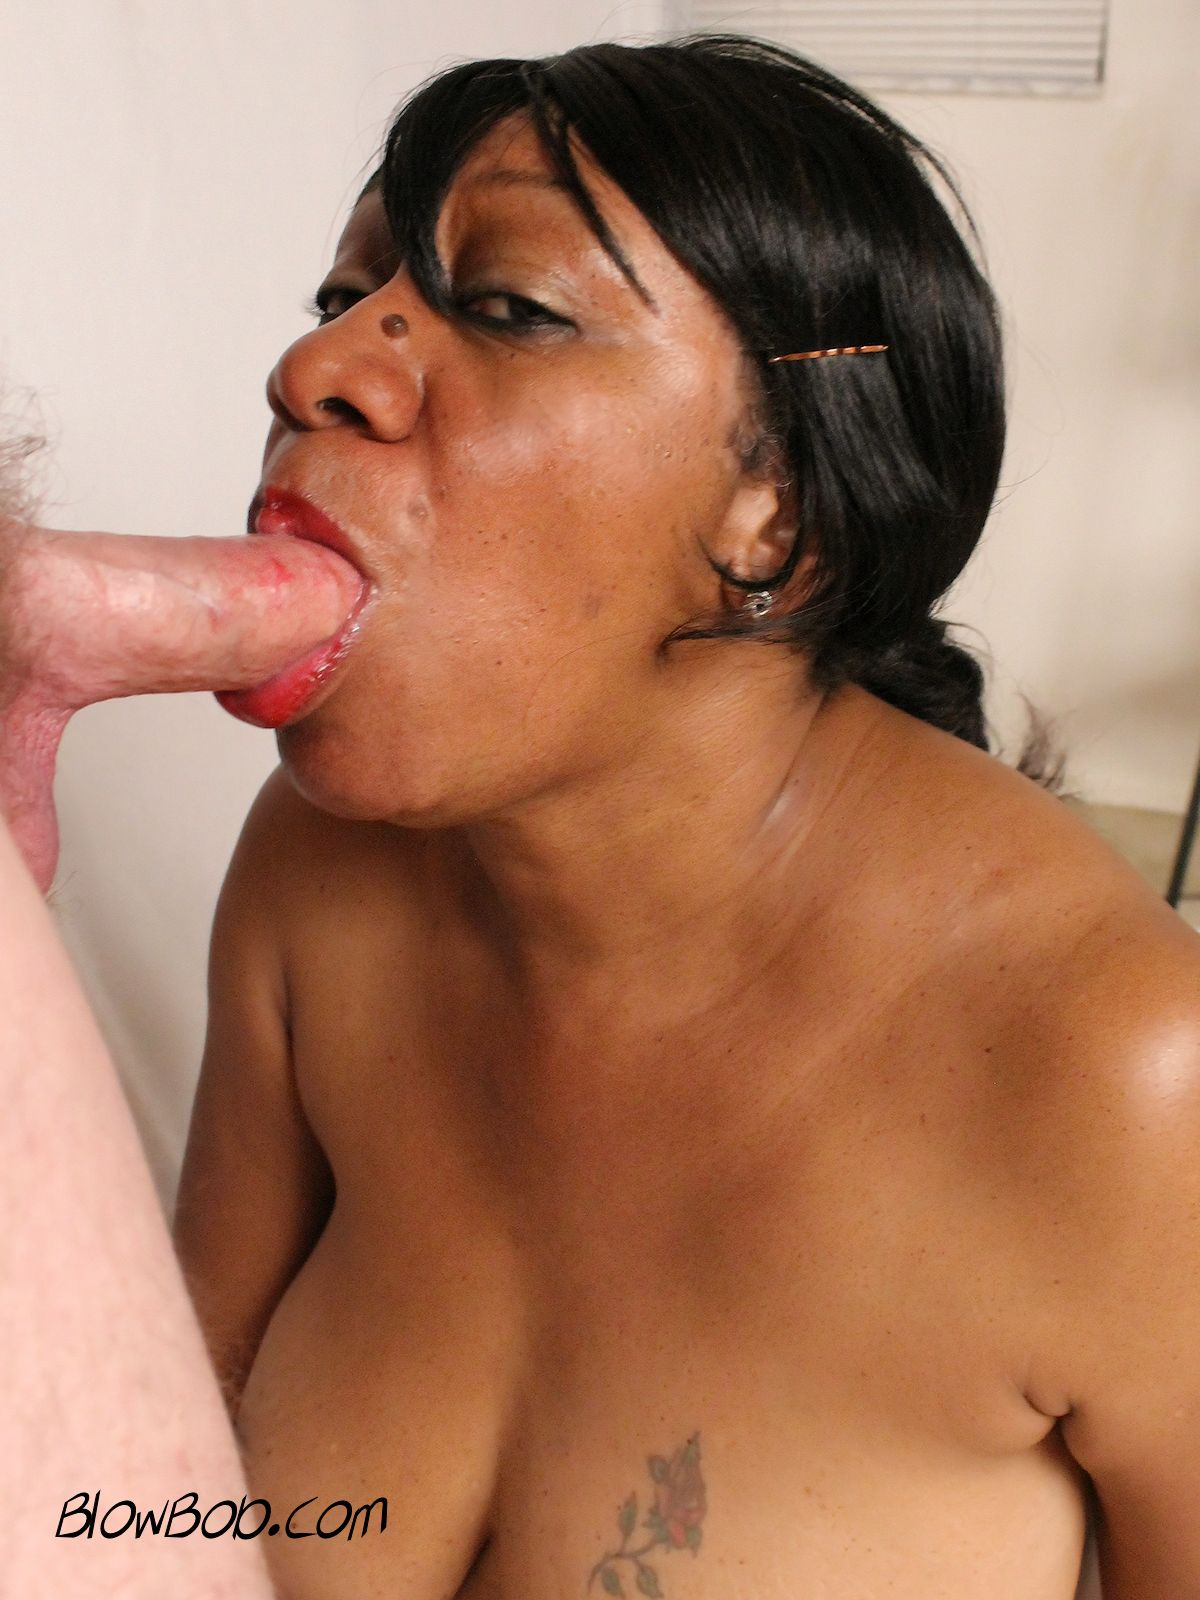 Big Tit Threesome Ebony